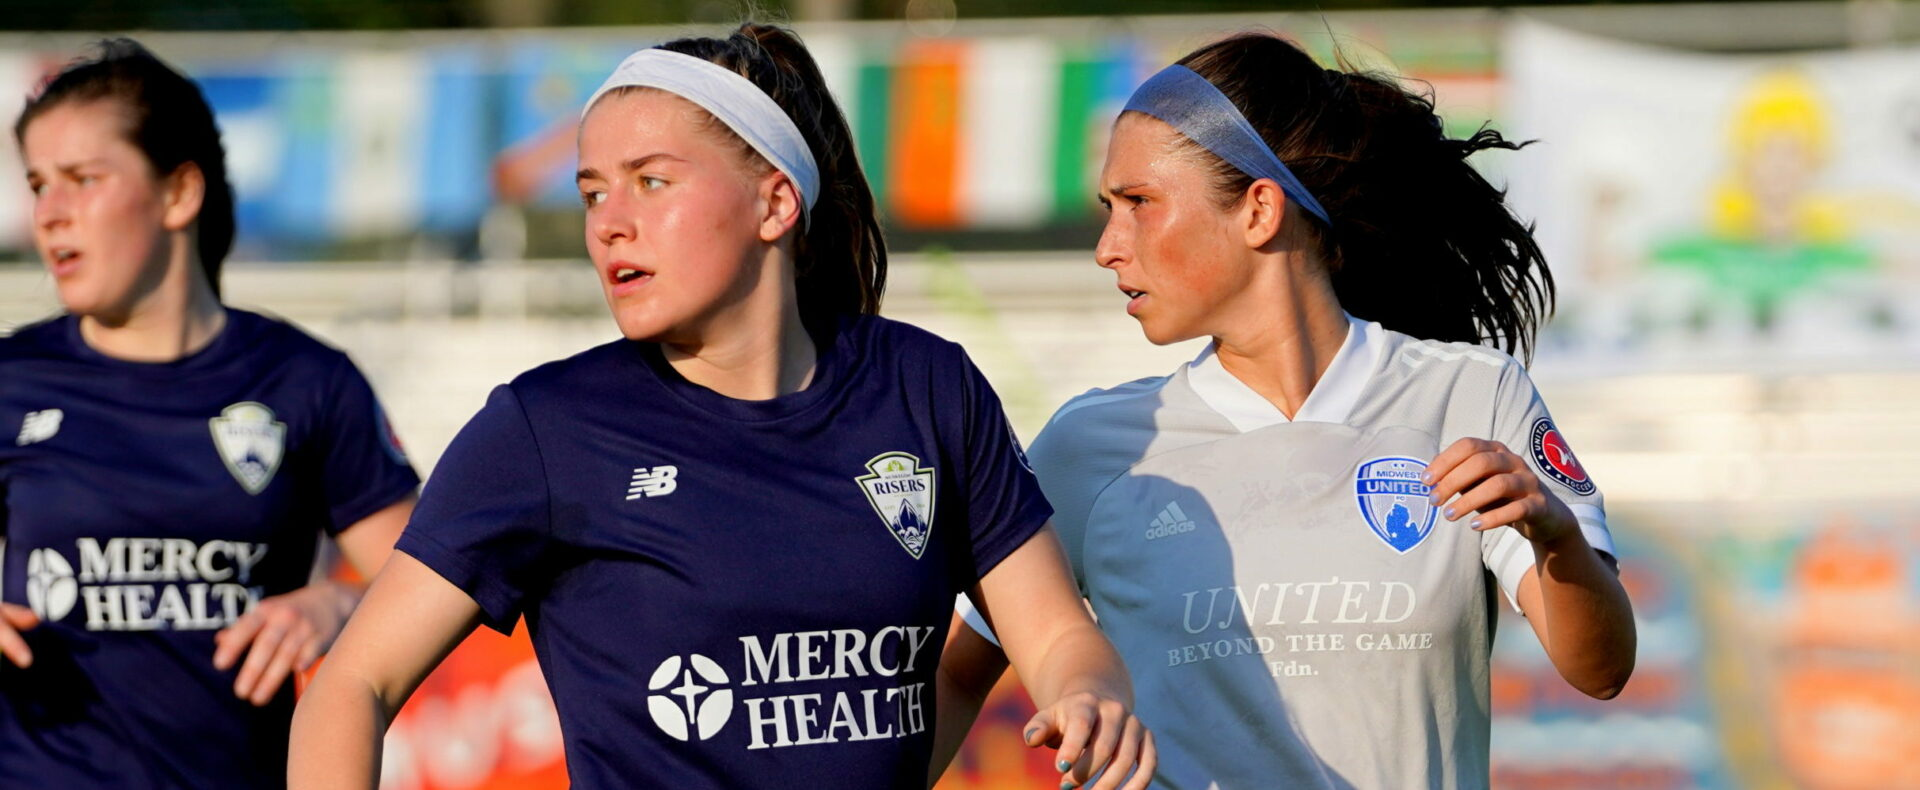 Muskegon Risers women's team puts up a good fight, but falls 3-2 to Midwest United in its inaugural  home game